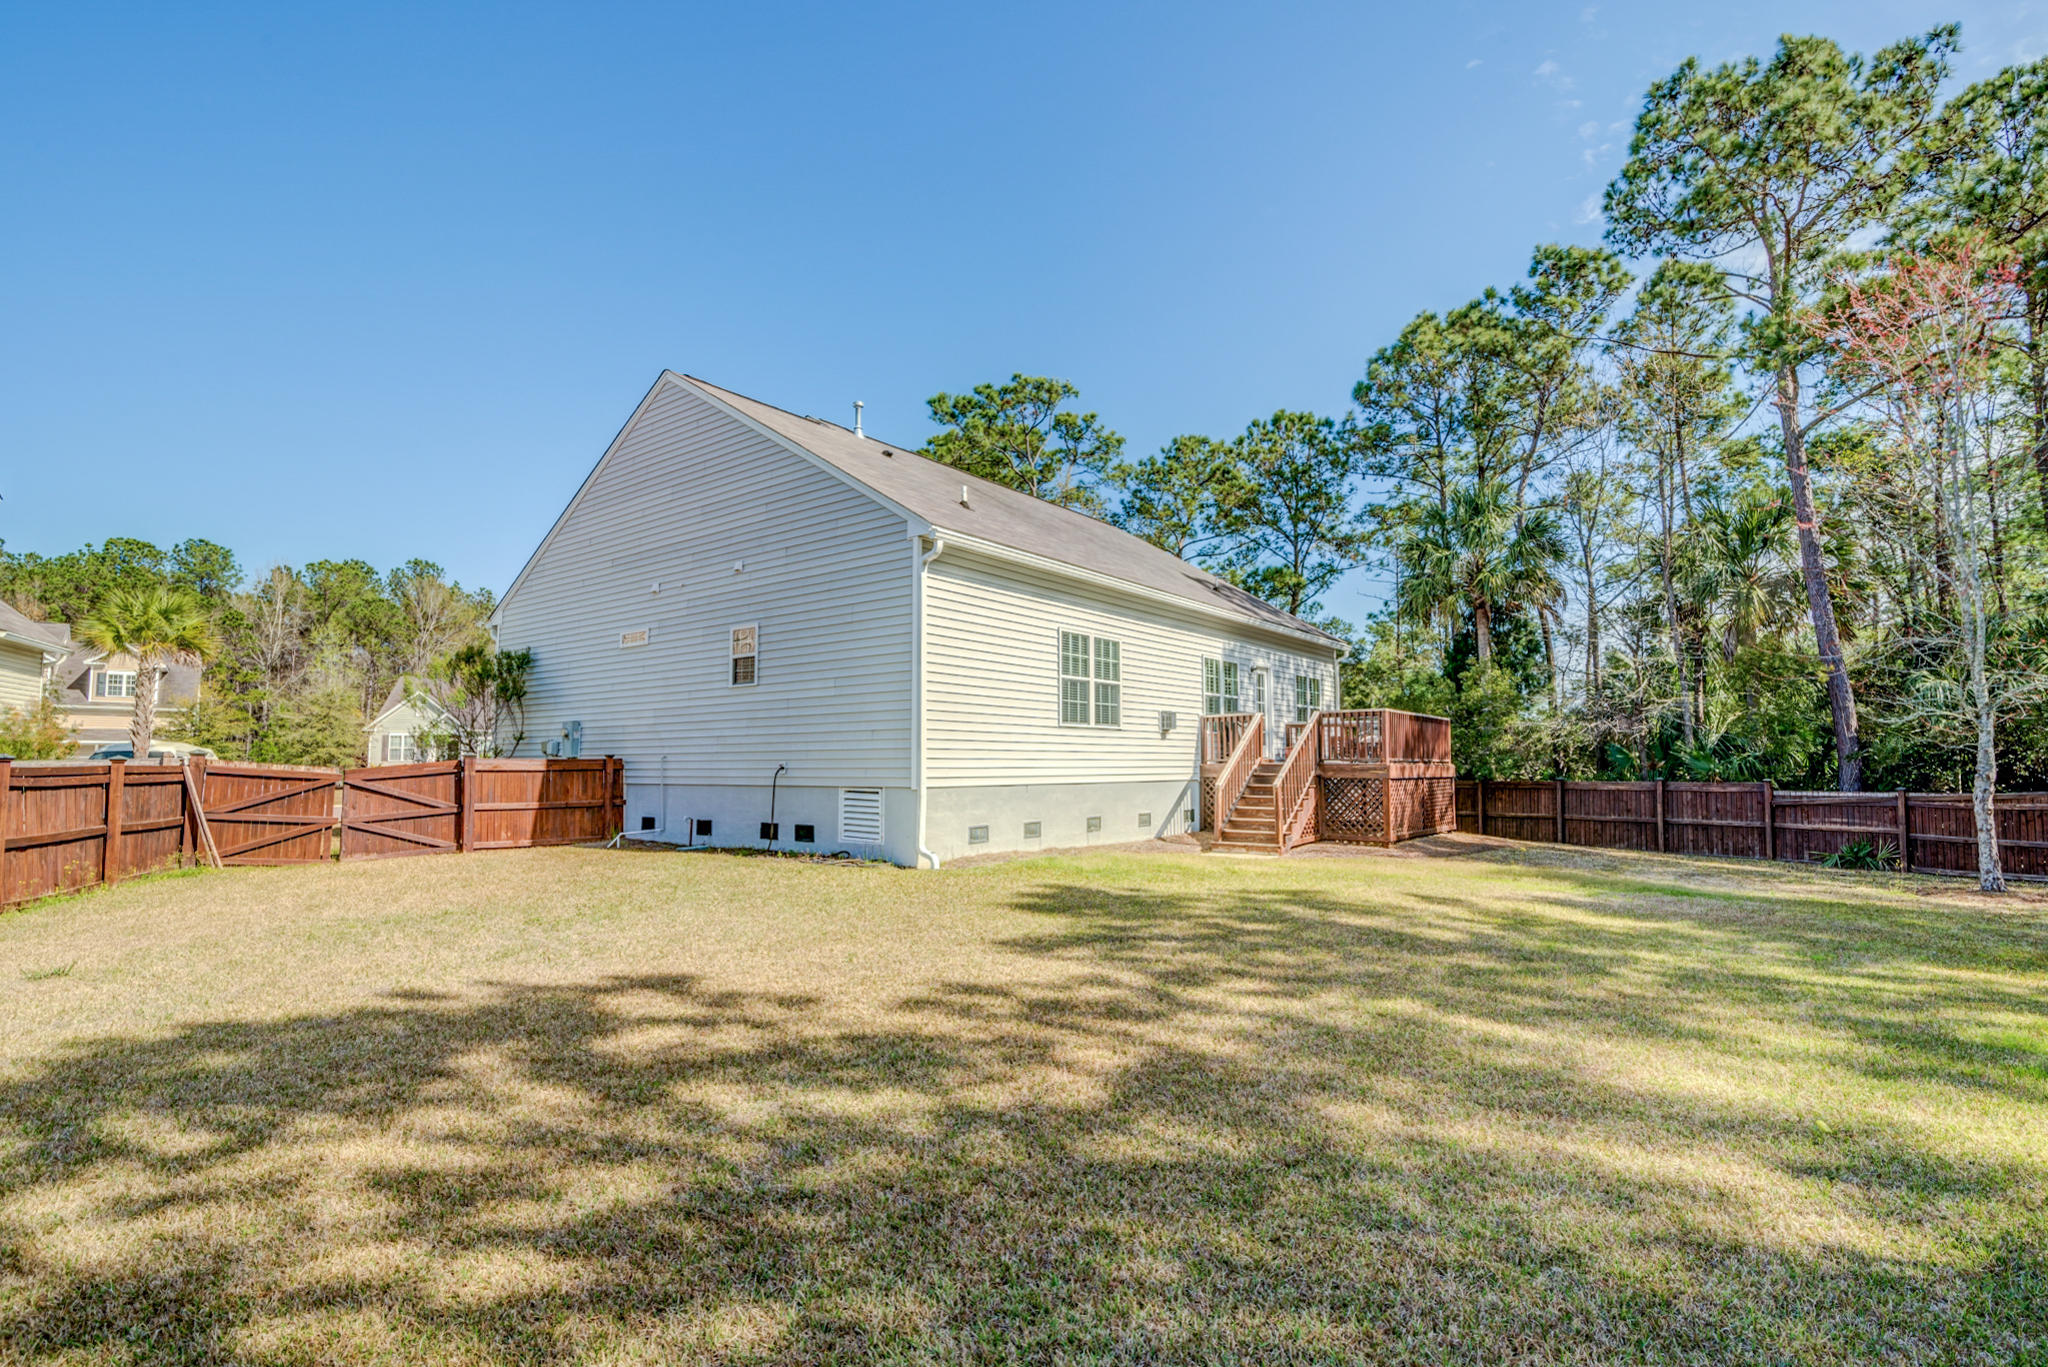 Planters Pointe Homes For Sale - 2936 Thornrose, Mount Pleasant, SC - 6